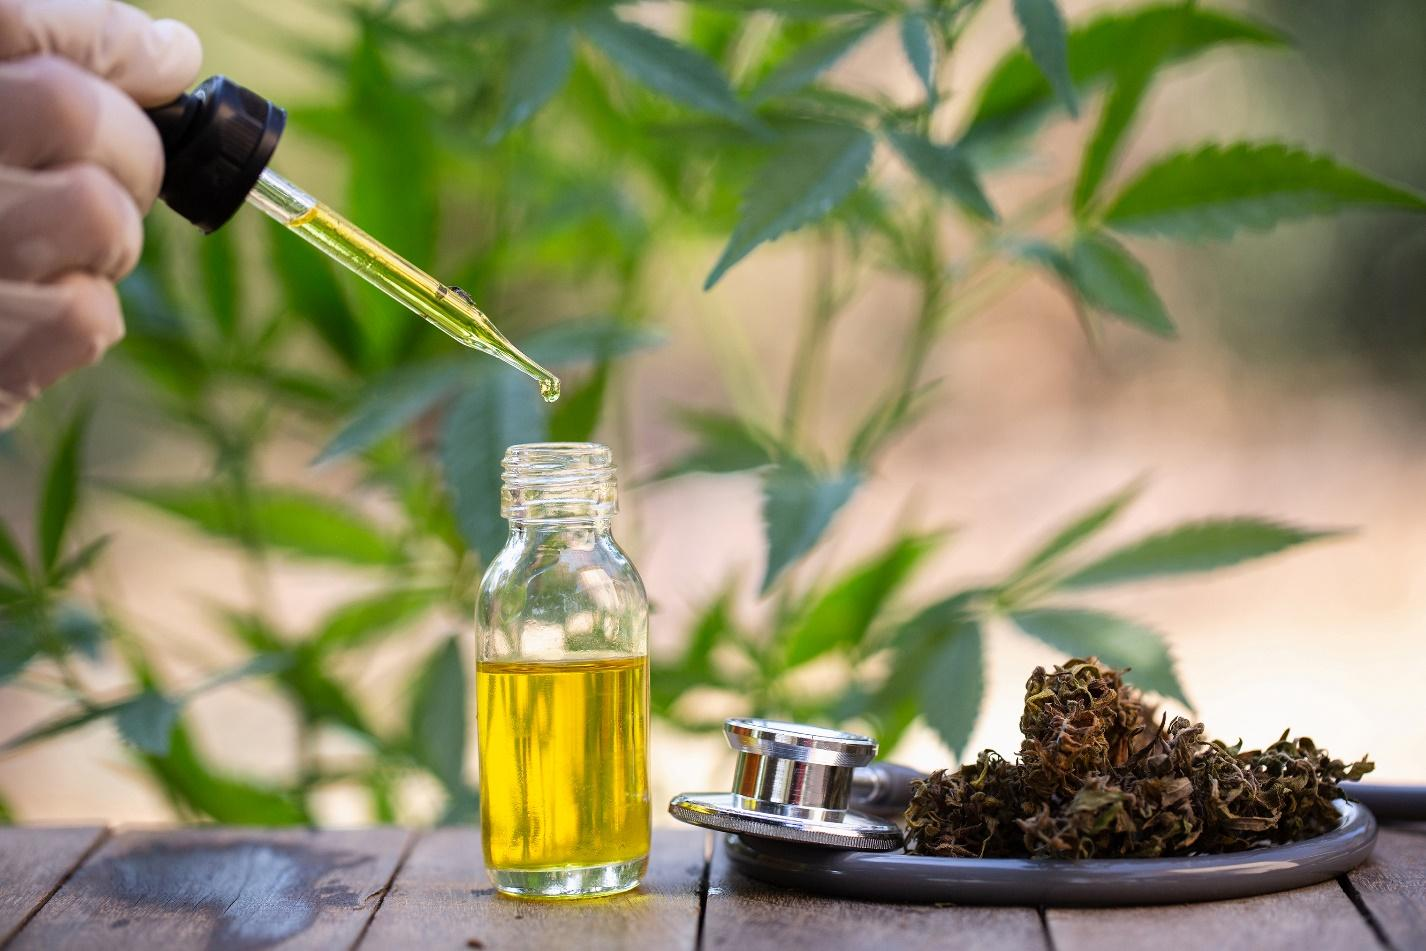 7 Things You Have To Know About CBD Oil